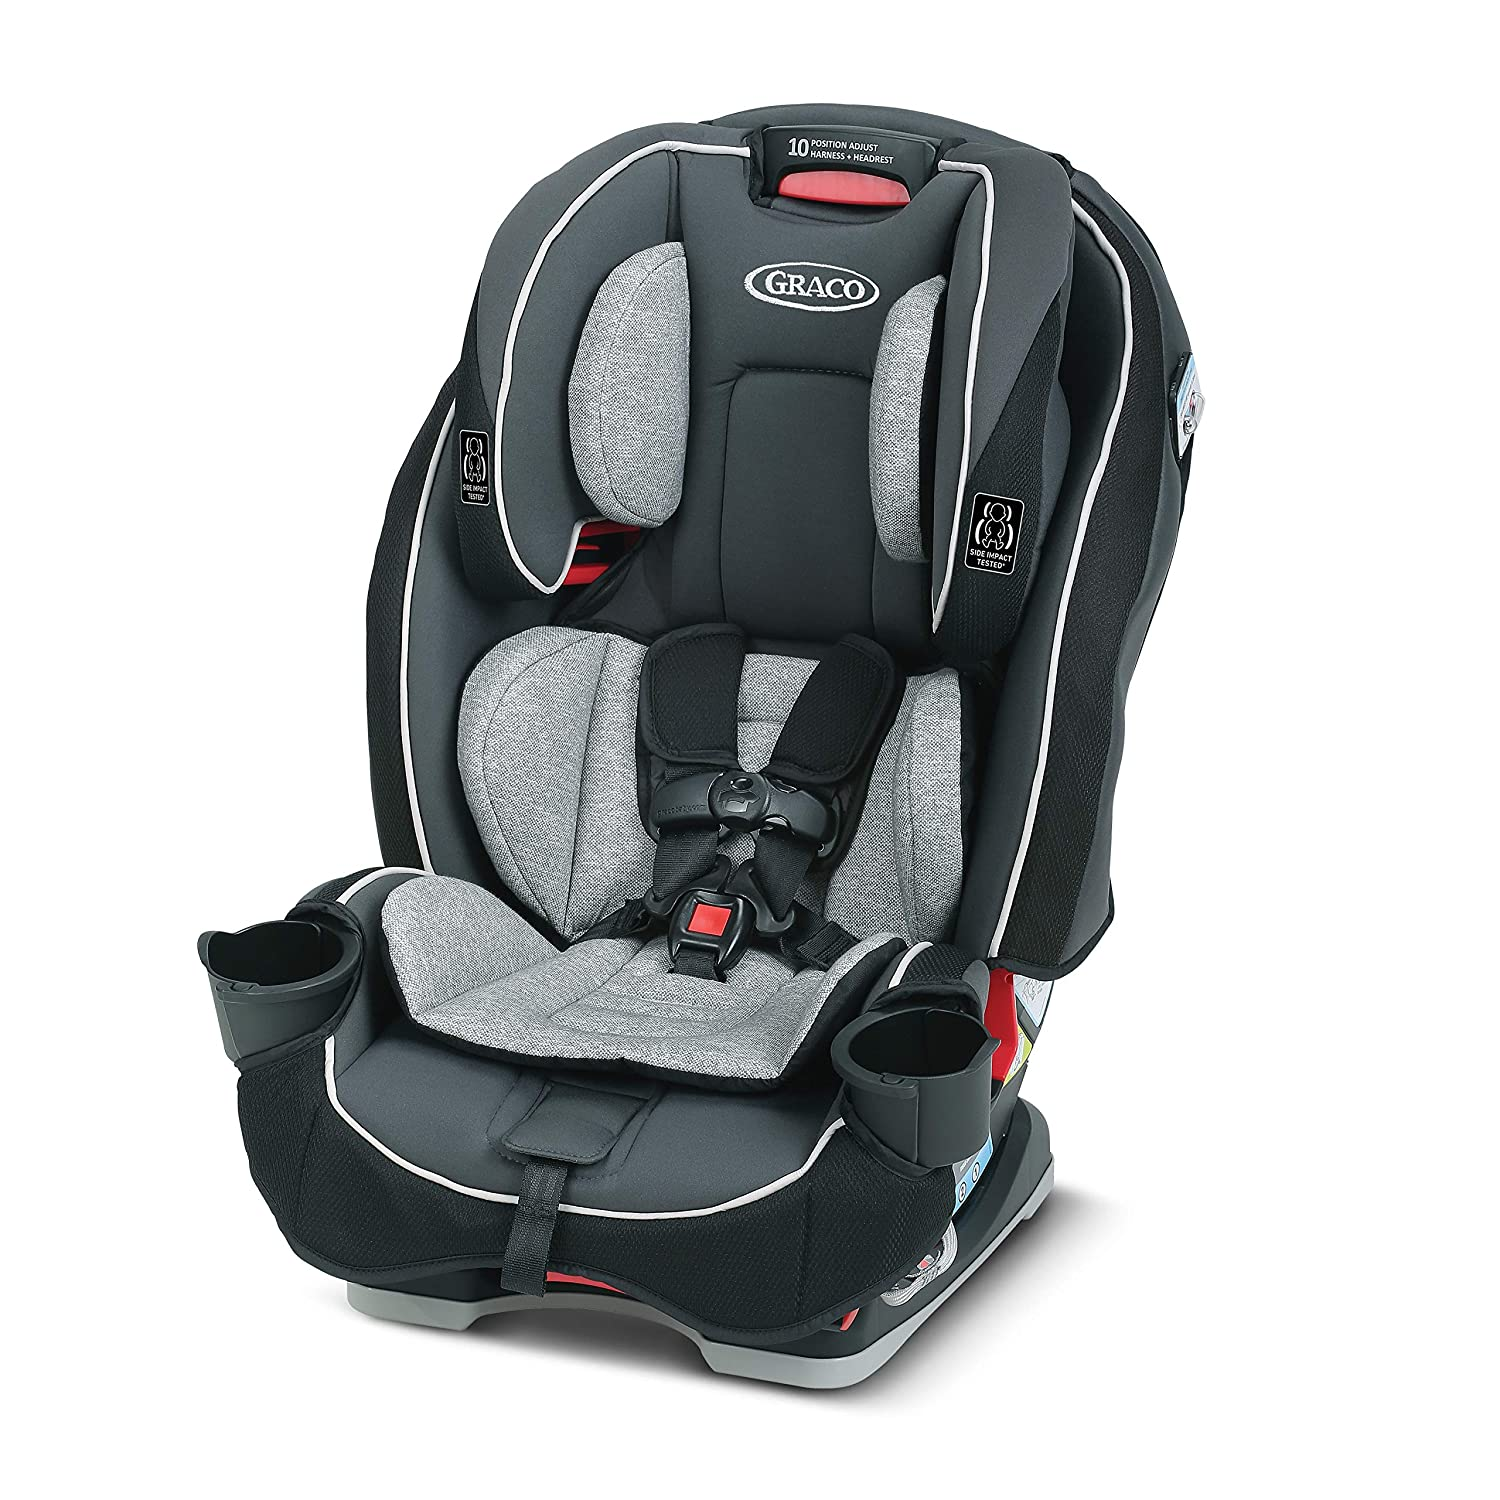 Graco Slim Fit Car Seat Reviews, How Do I Get A Free Car Seat From Masshealth